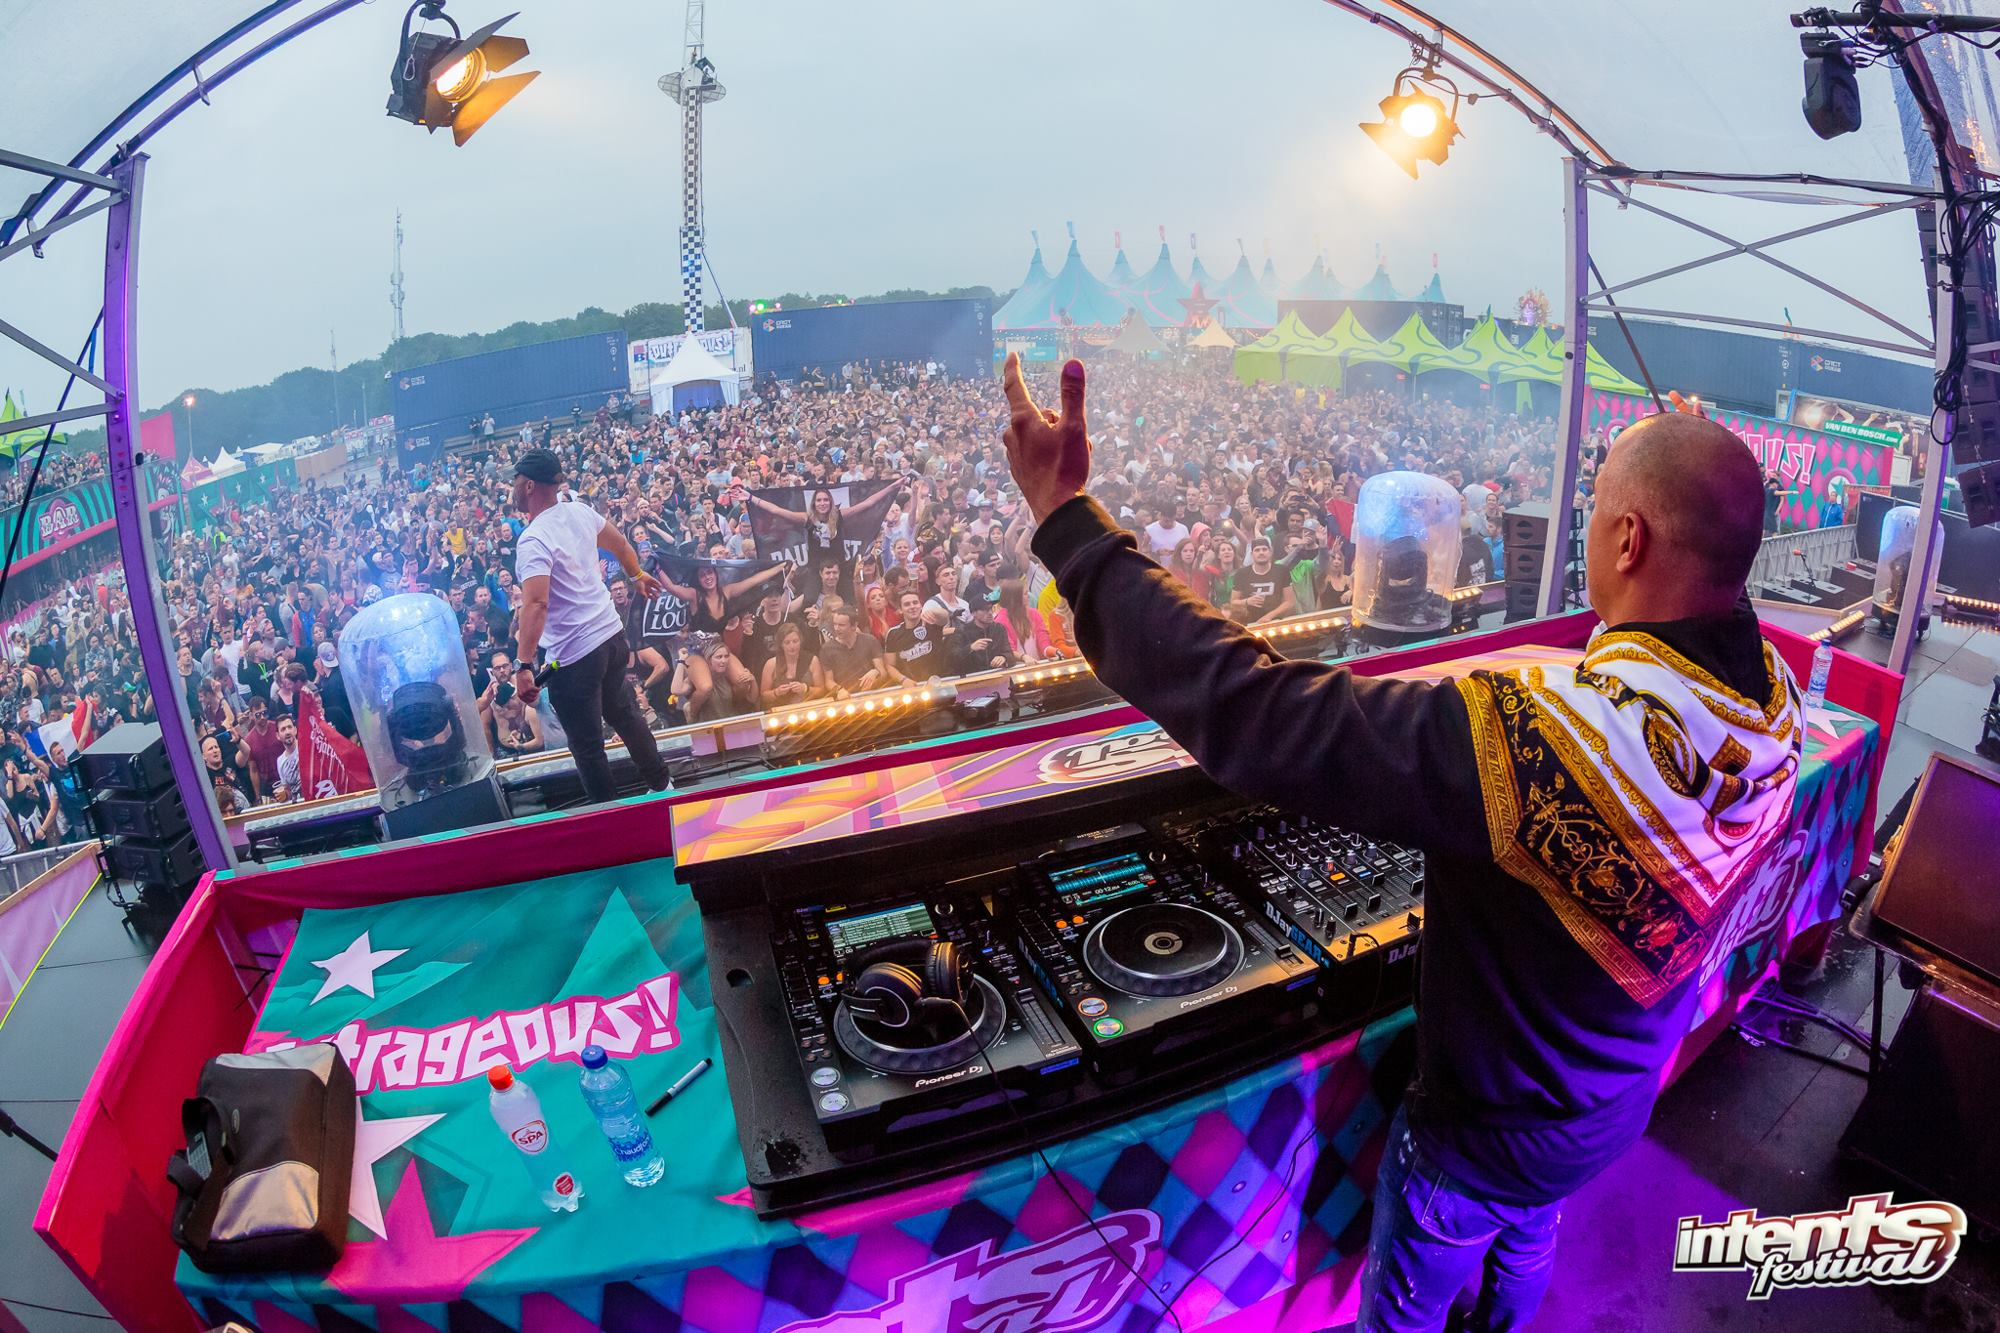 Intents Festival 2018 The Ultimate Celebration party report